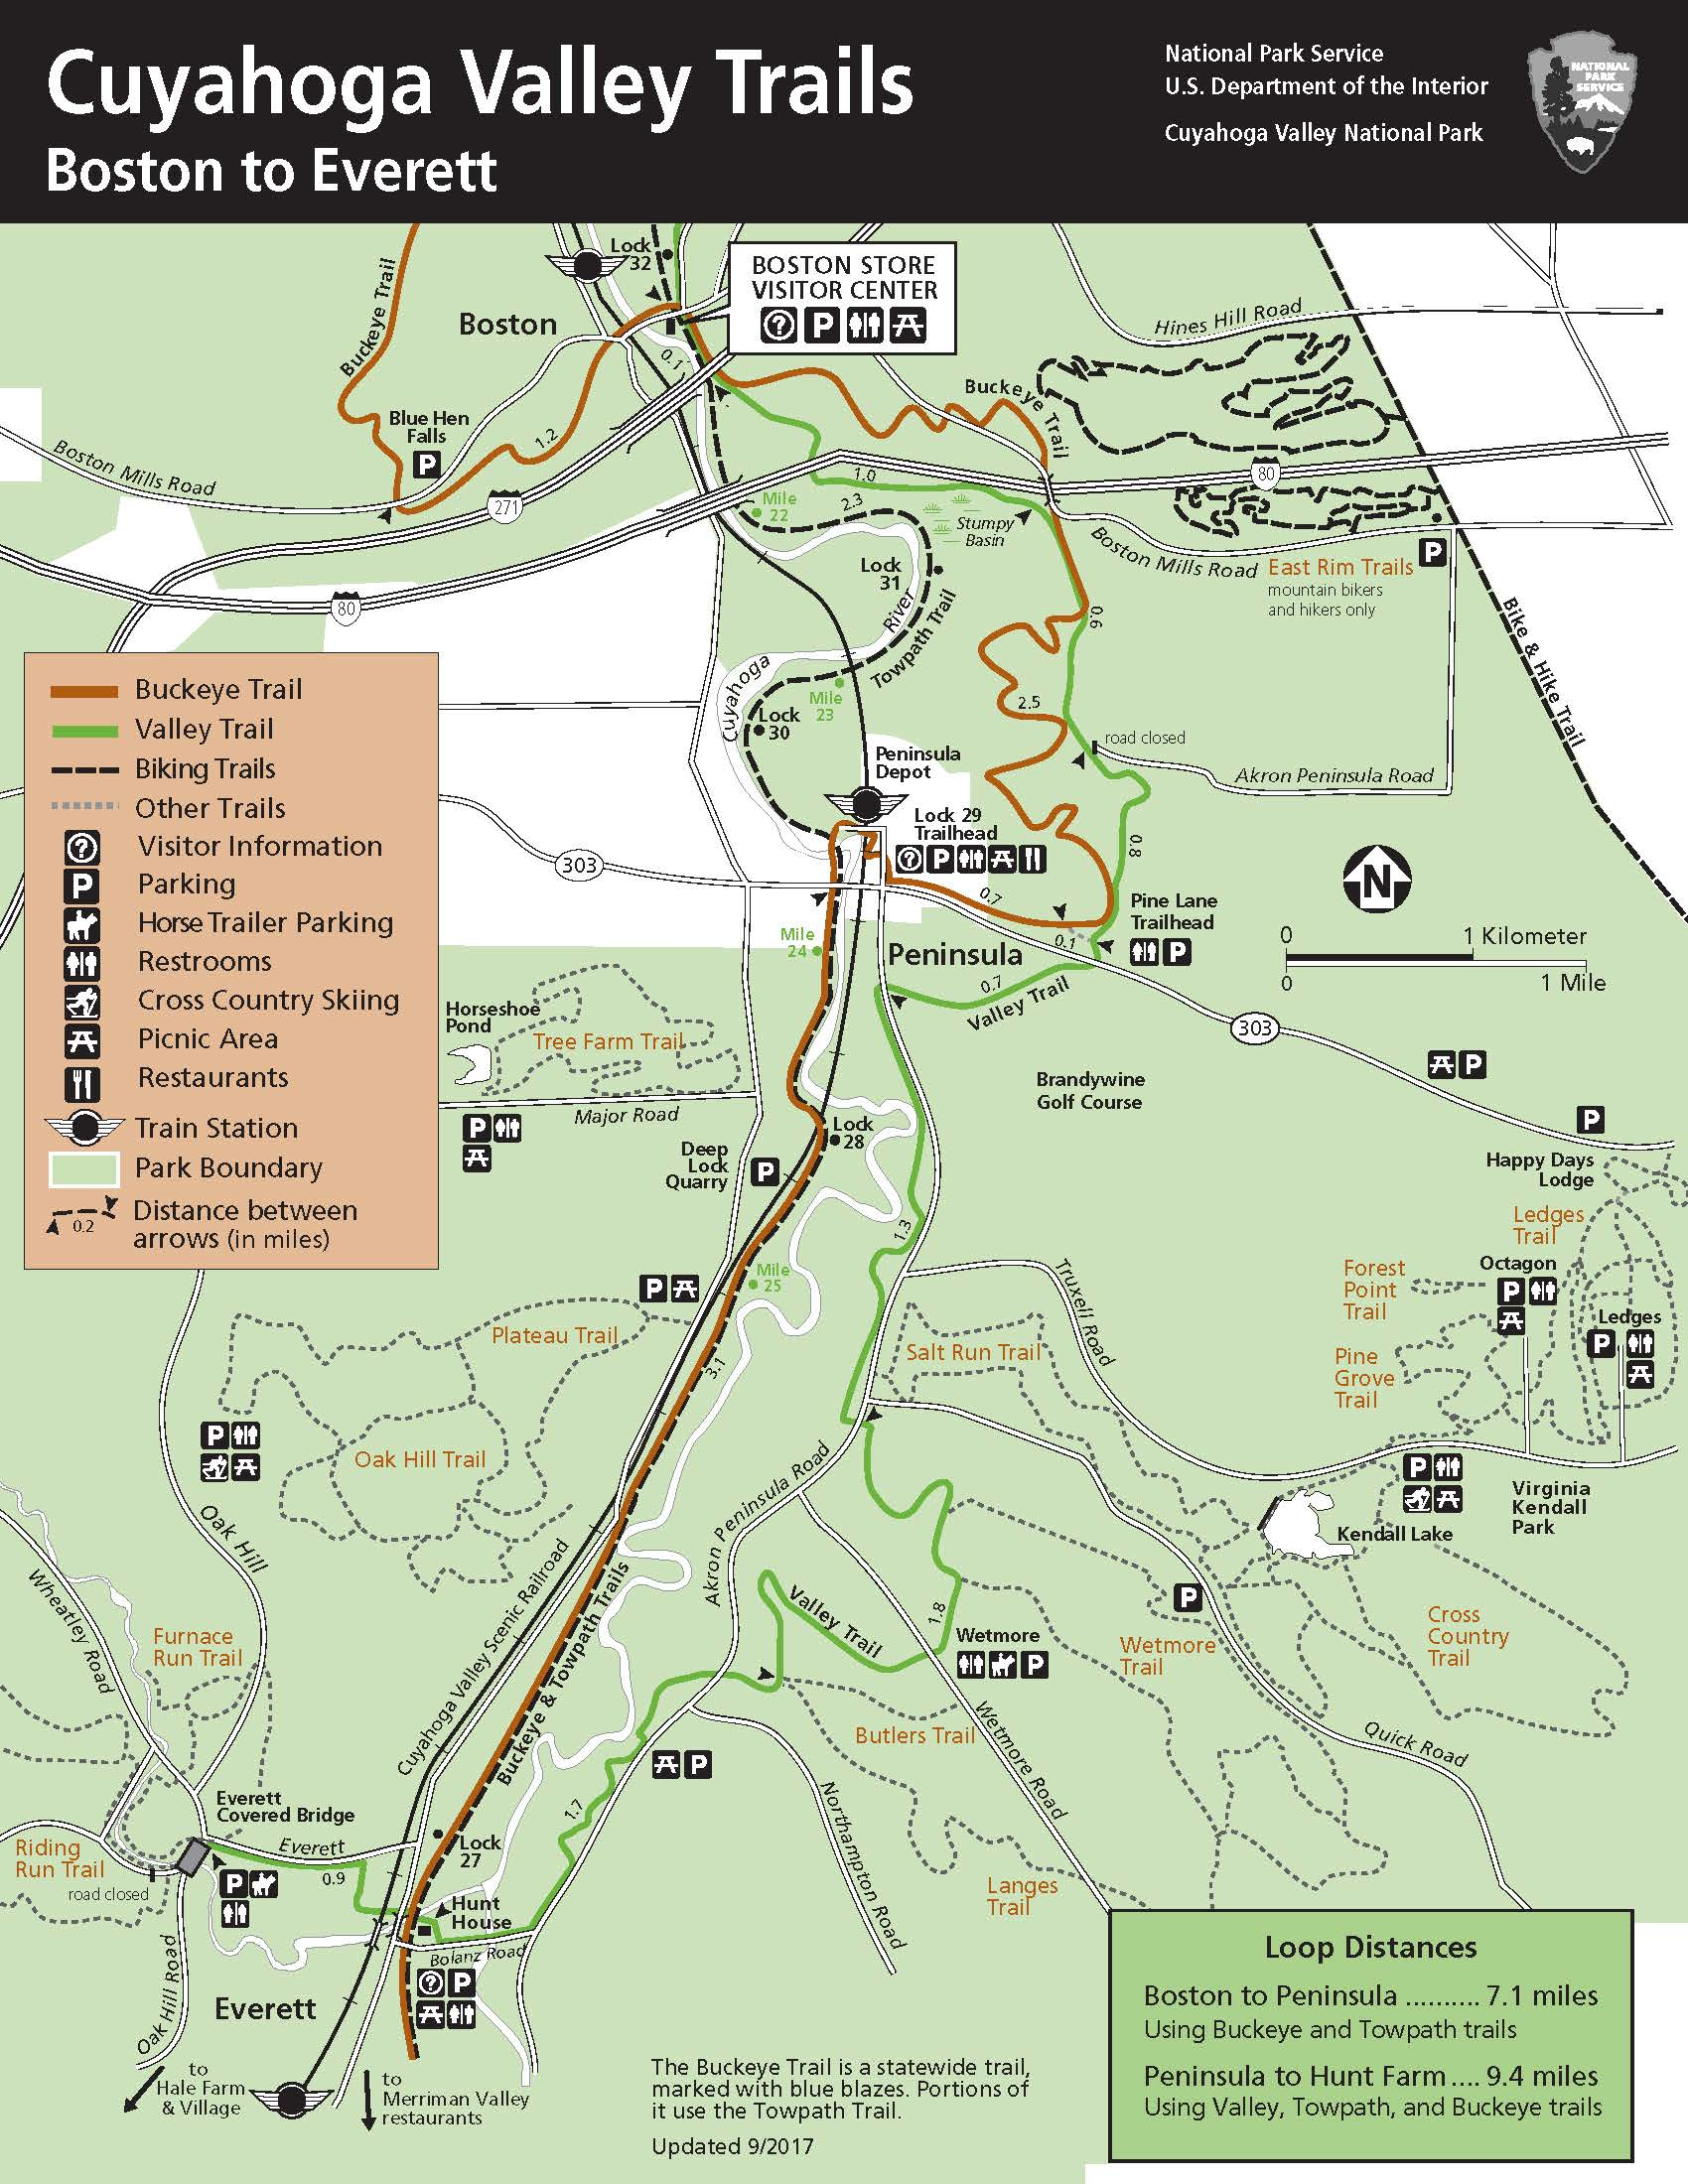 Maps - Cuyahoga Valley National Park (U.S. National Park Service) Valley Park Map on